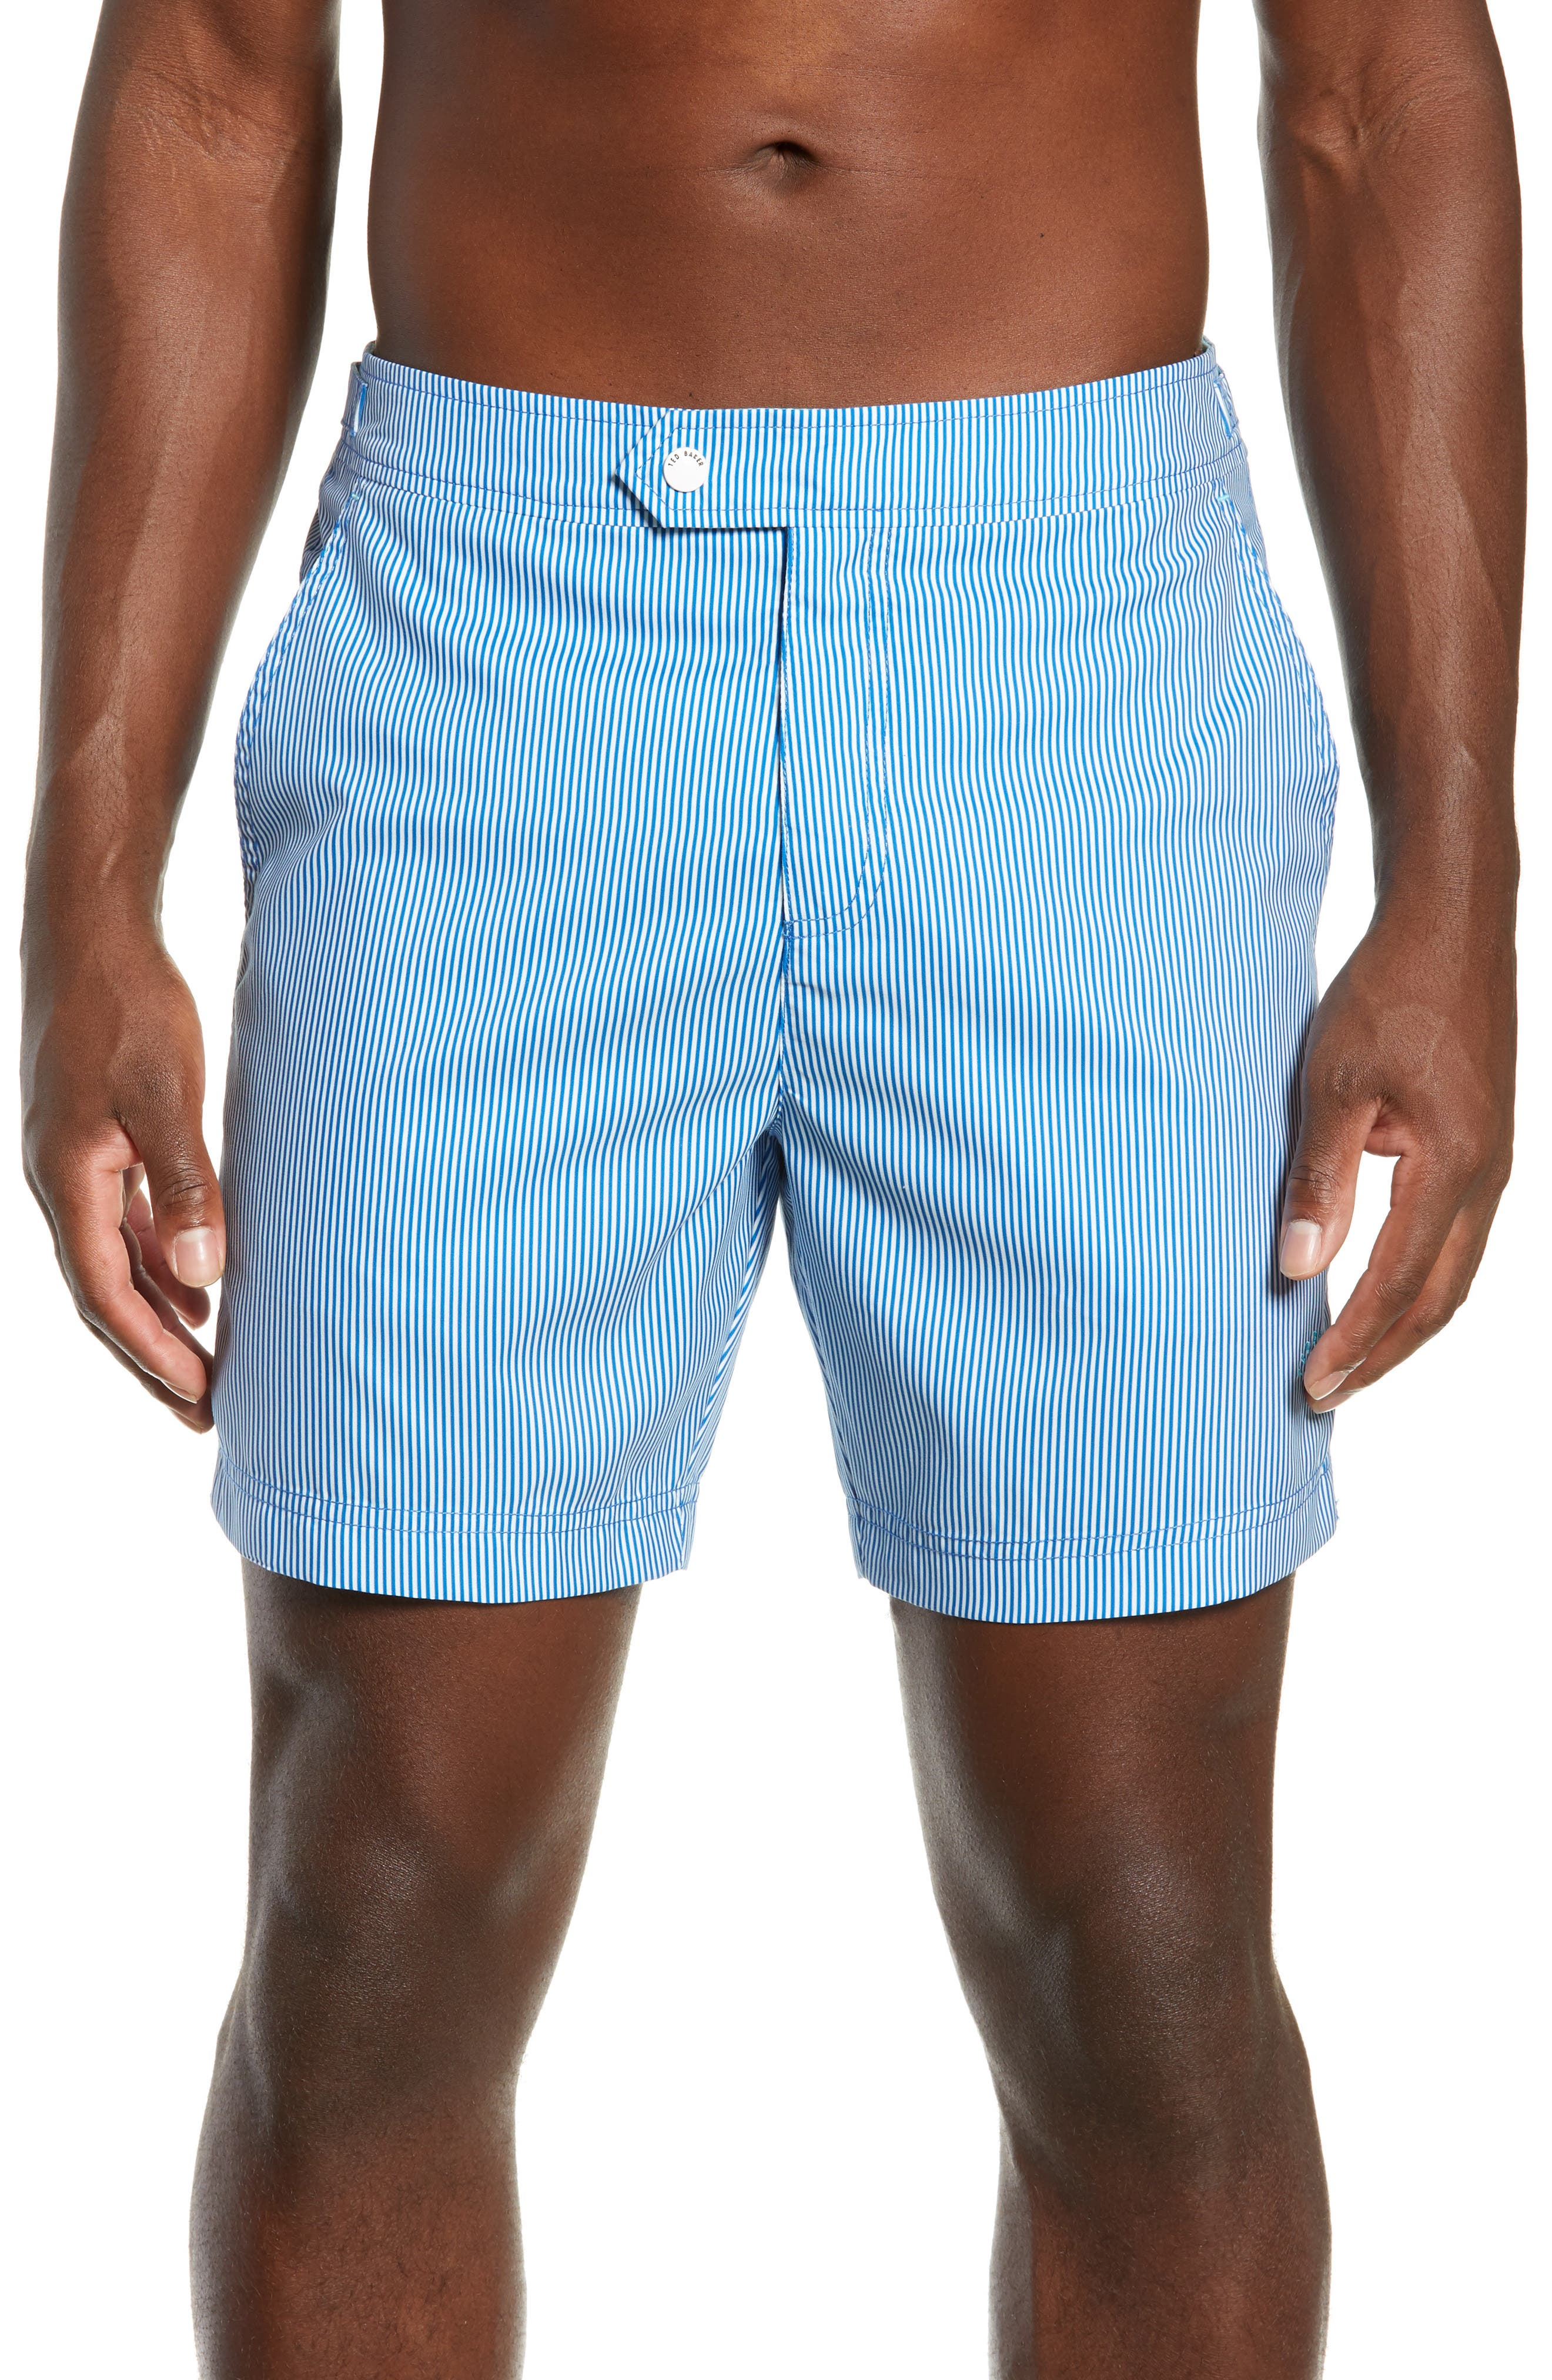 TED BAKER LONDON, Seel Stripe Swim Trunks, Main thumbnail 1, color, BLUE